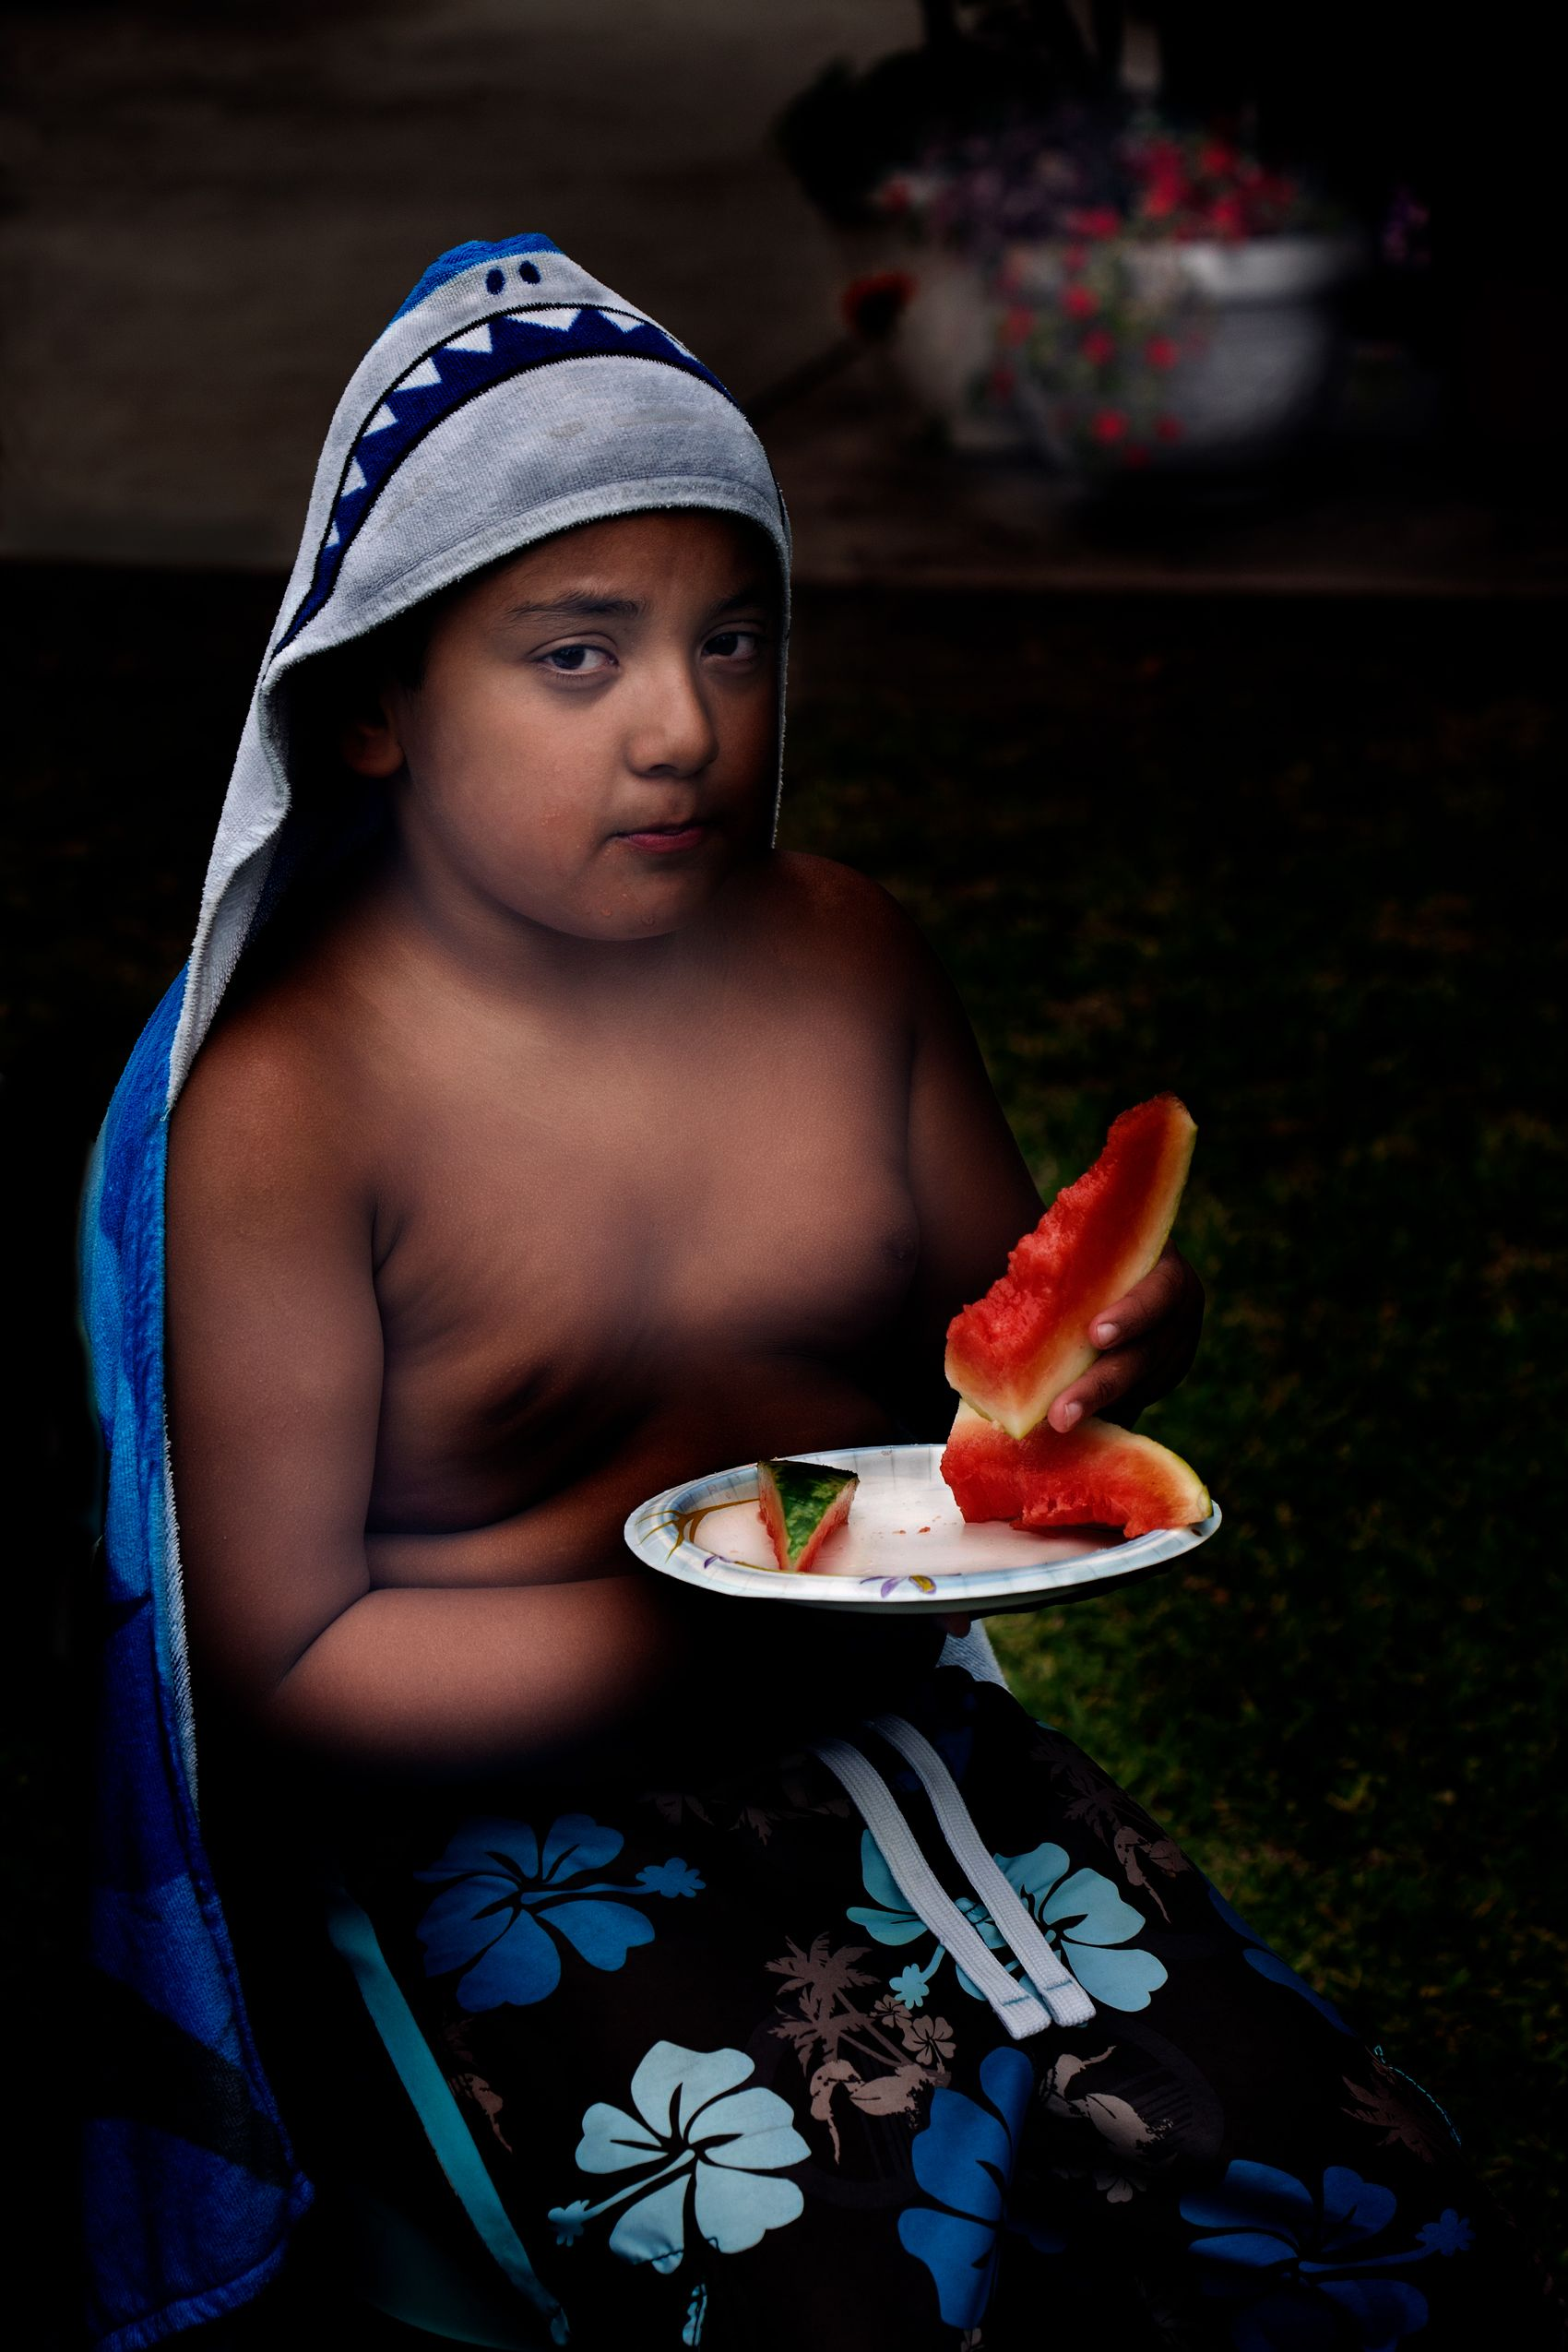 Backyard-Watermelon-e.jpg